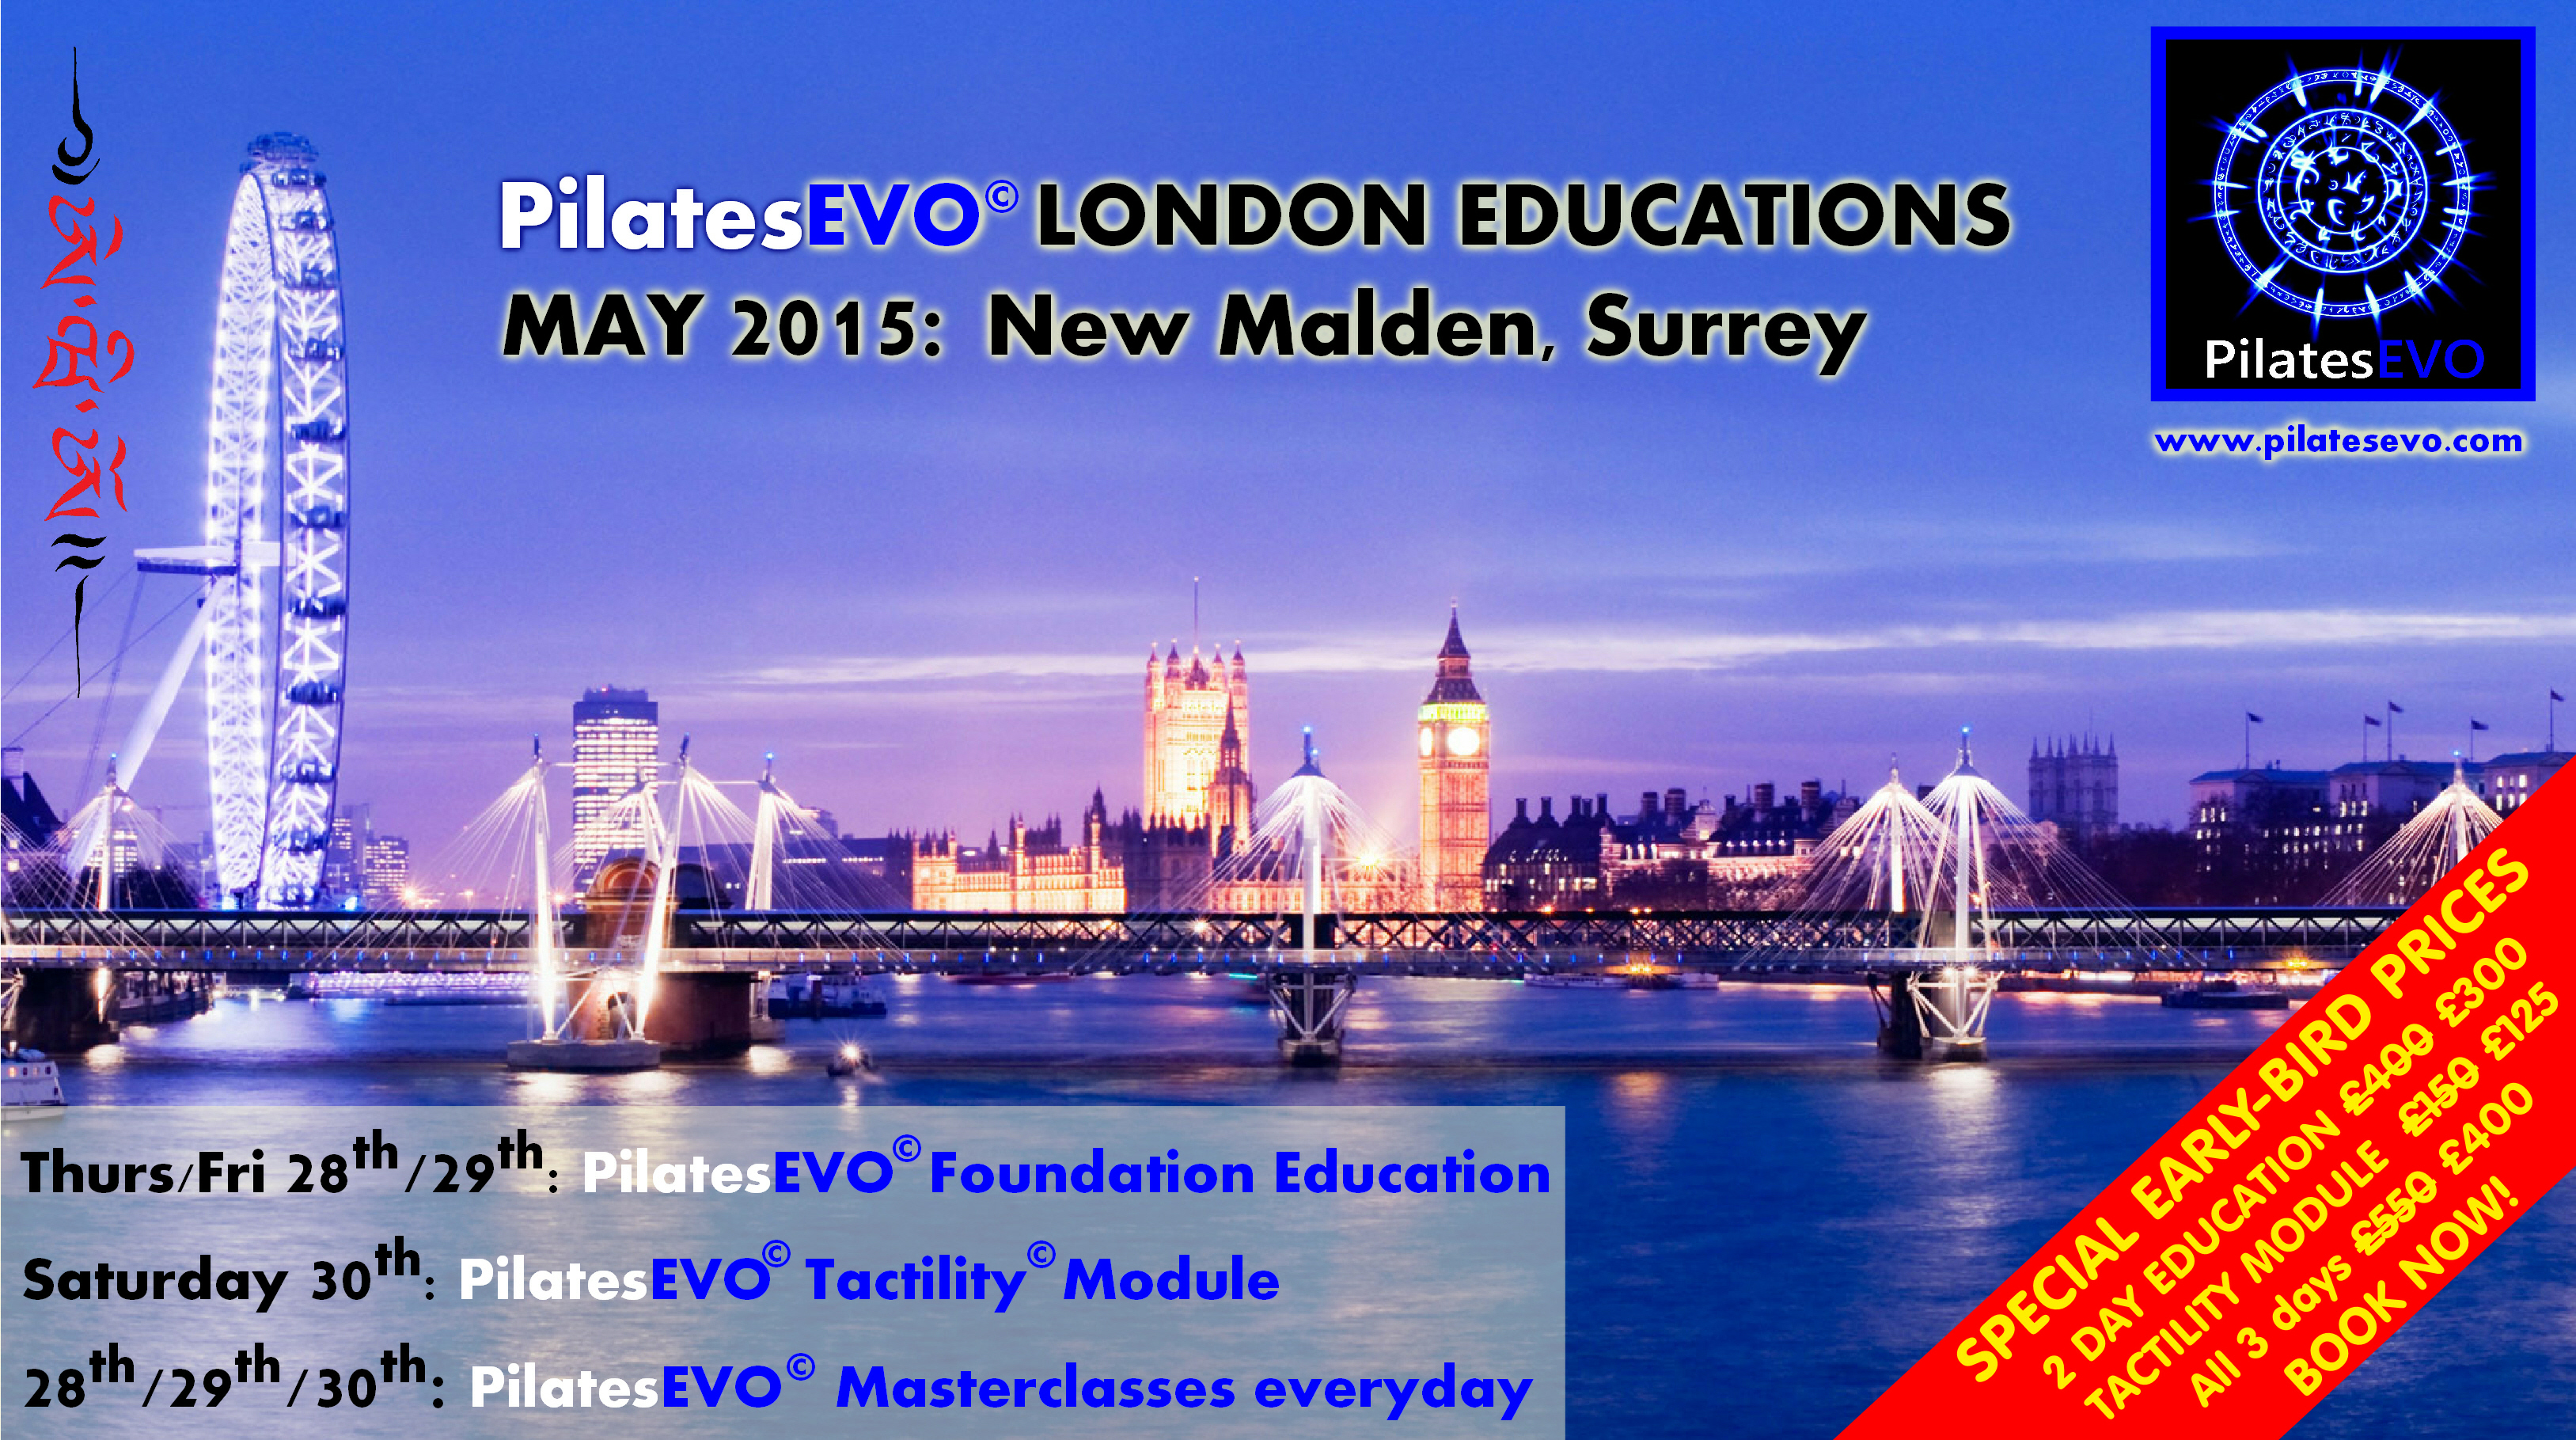 PilatesEVO London Educations May